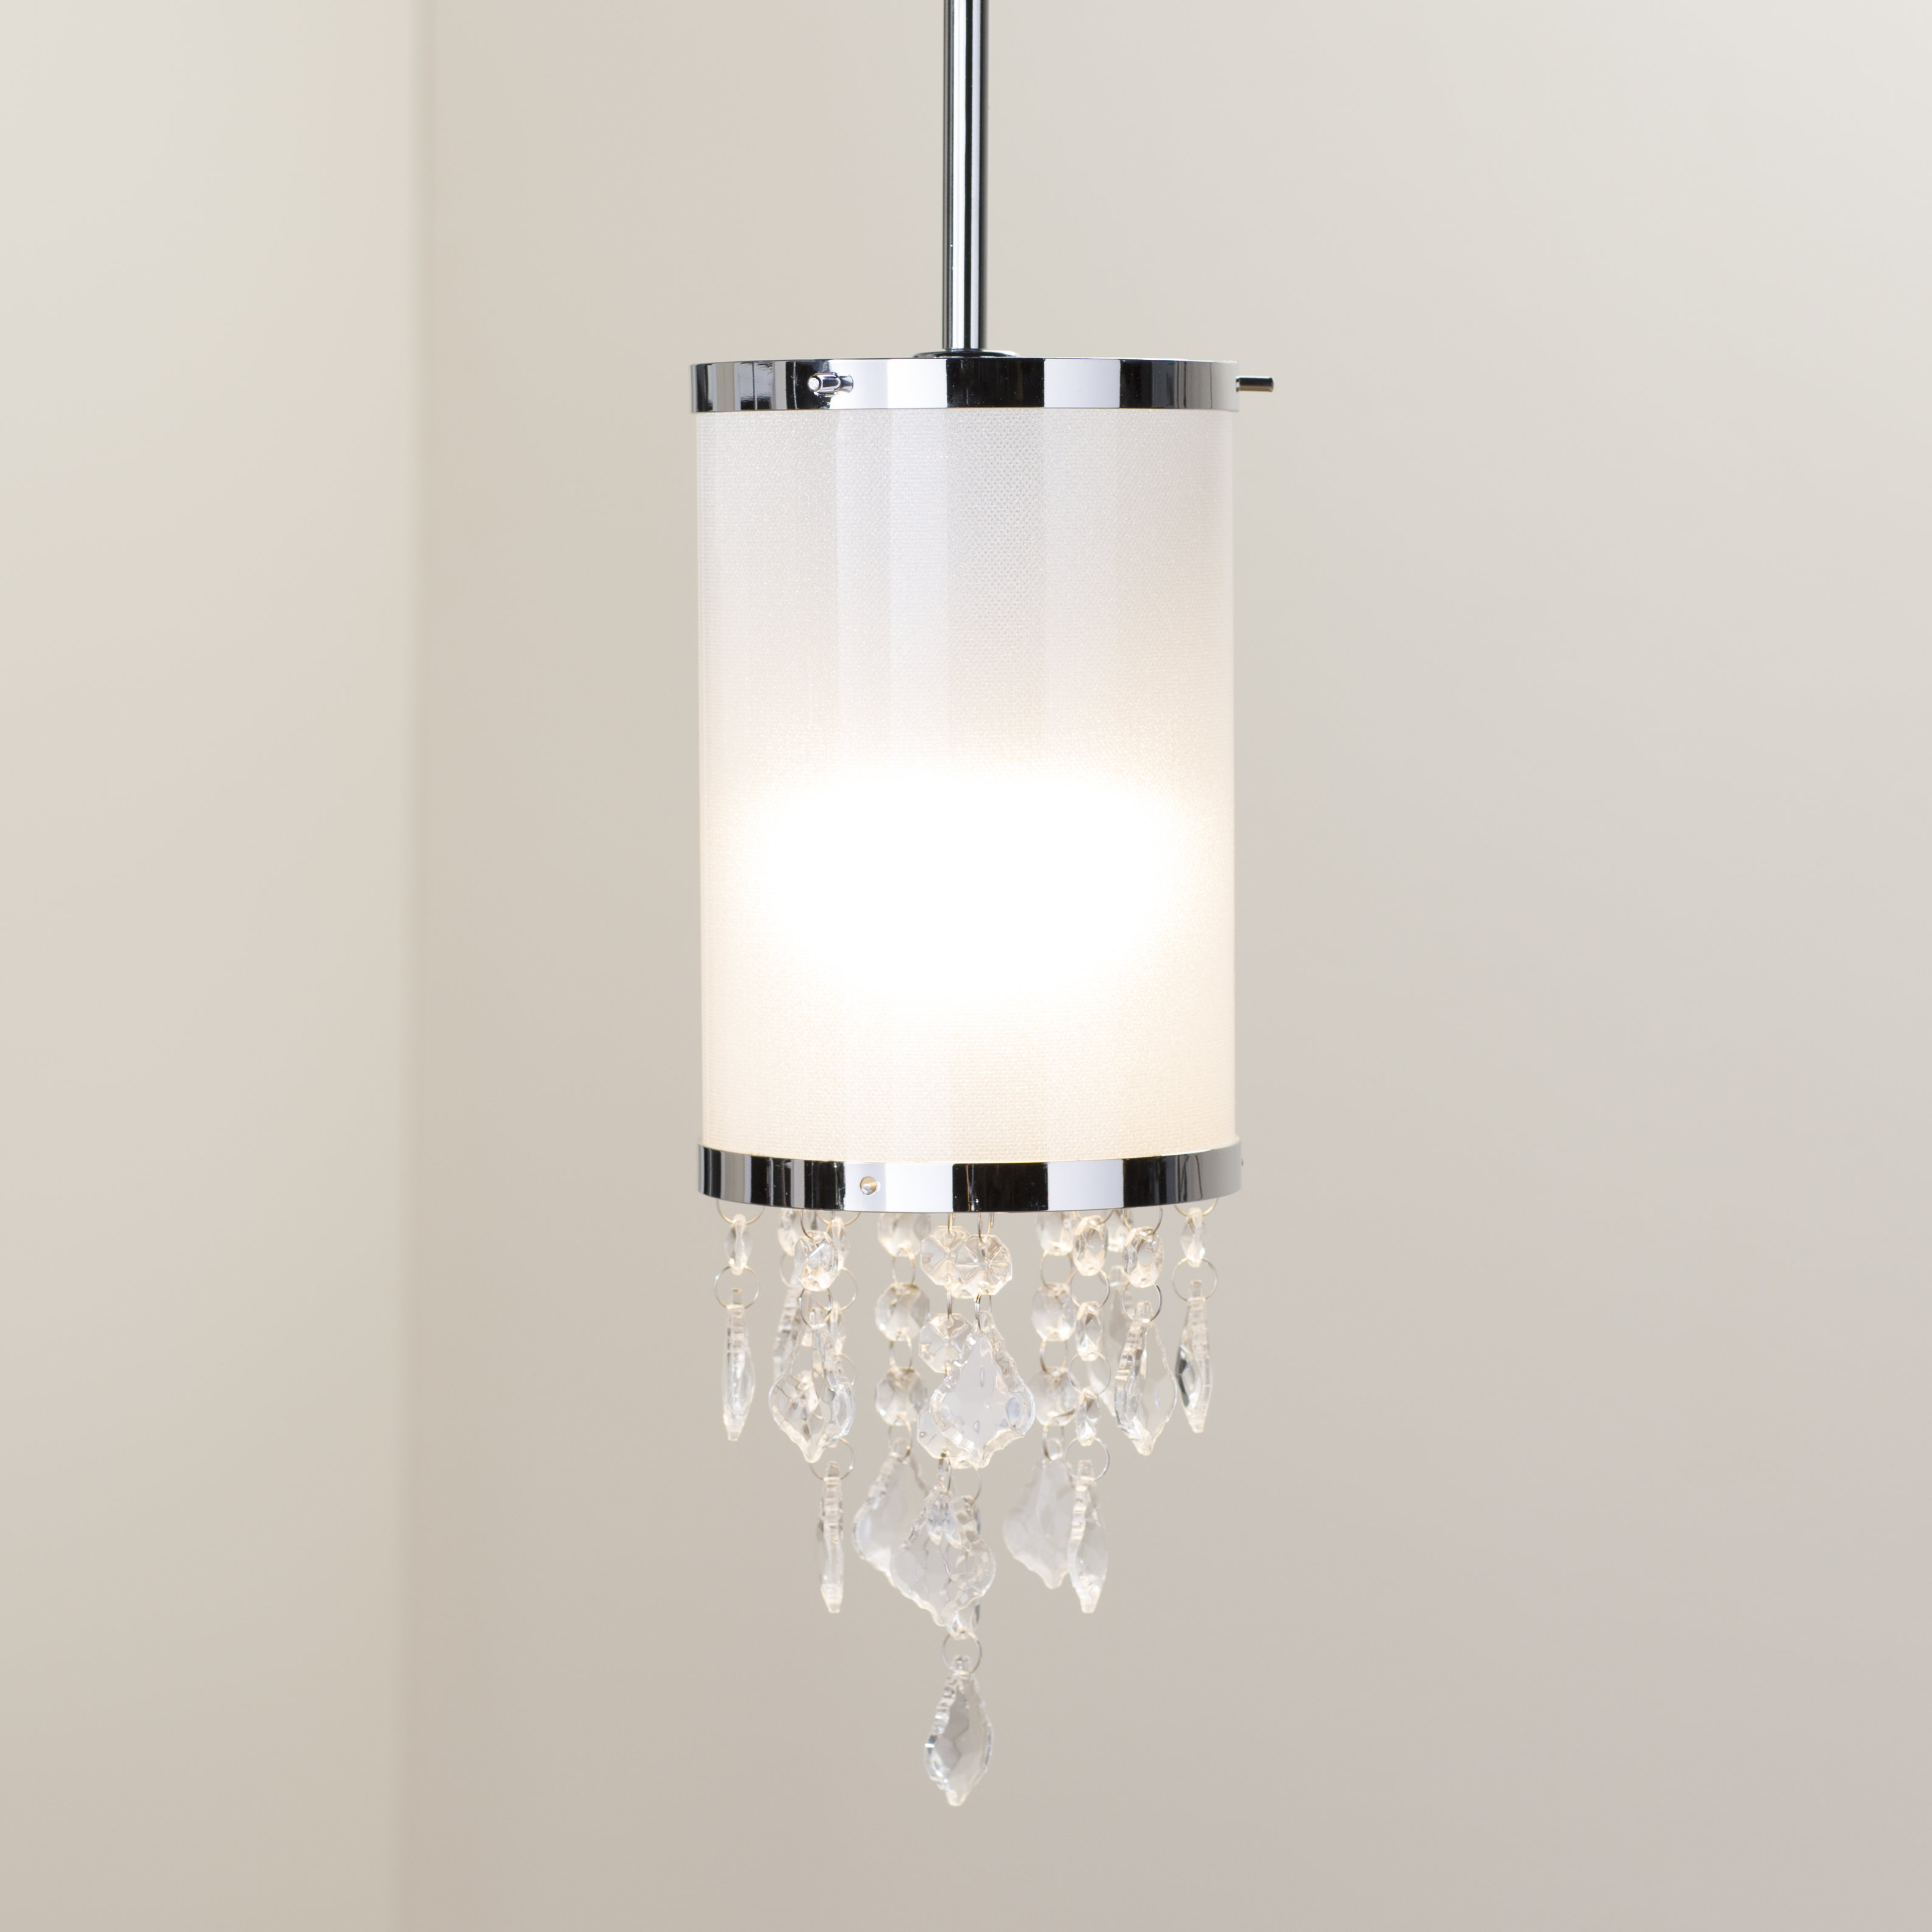 Newest Dilley 1 Light Unique / Statement Geometric Pendants Pertaining To Harford 1 Light Cylinder Pendant (View 17 of 20)